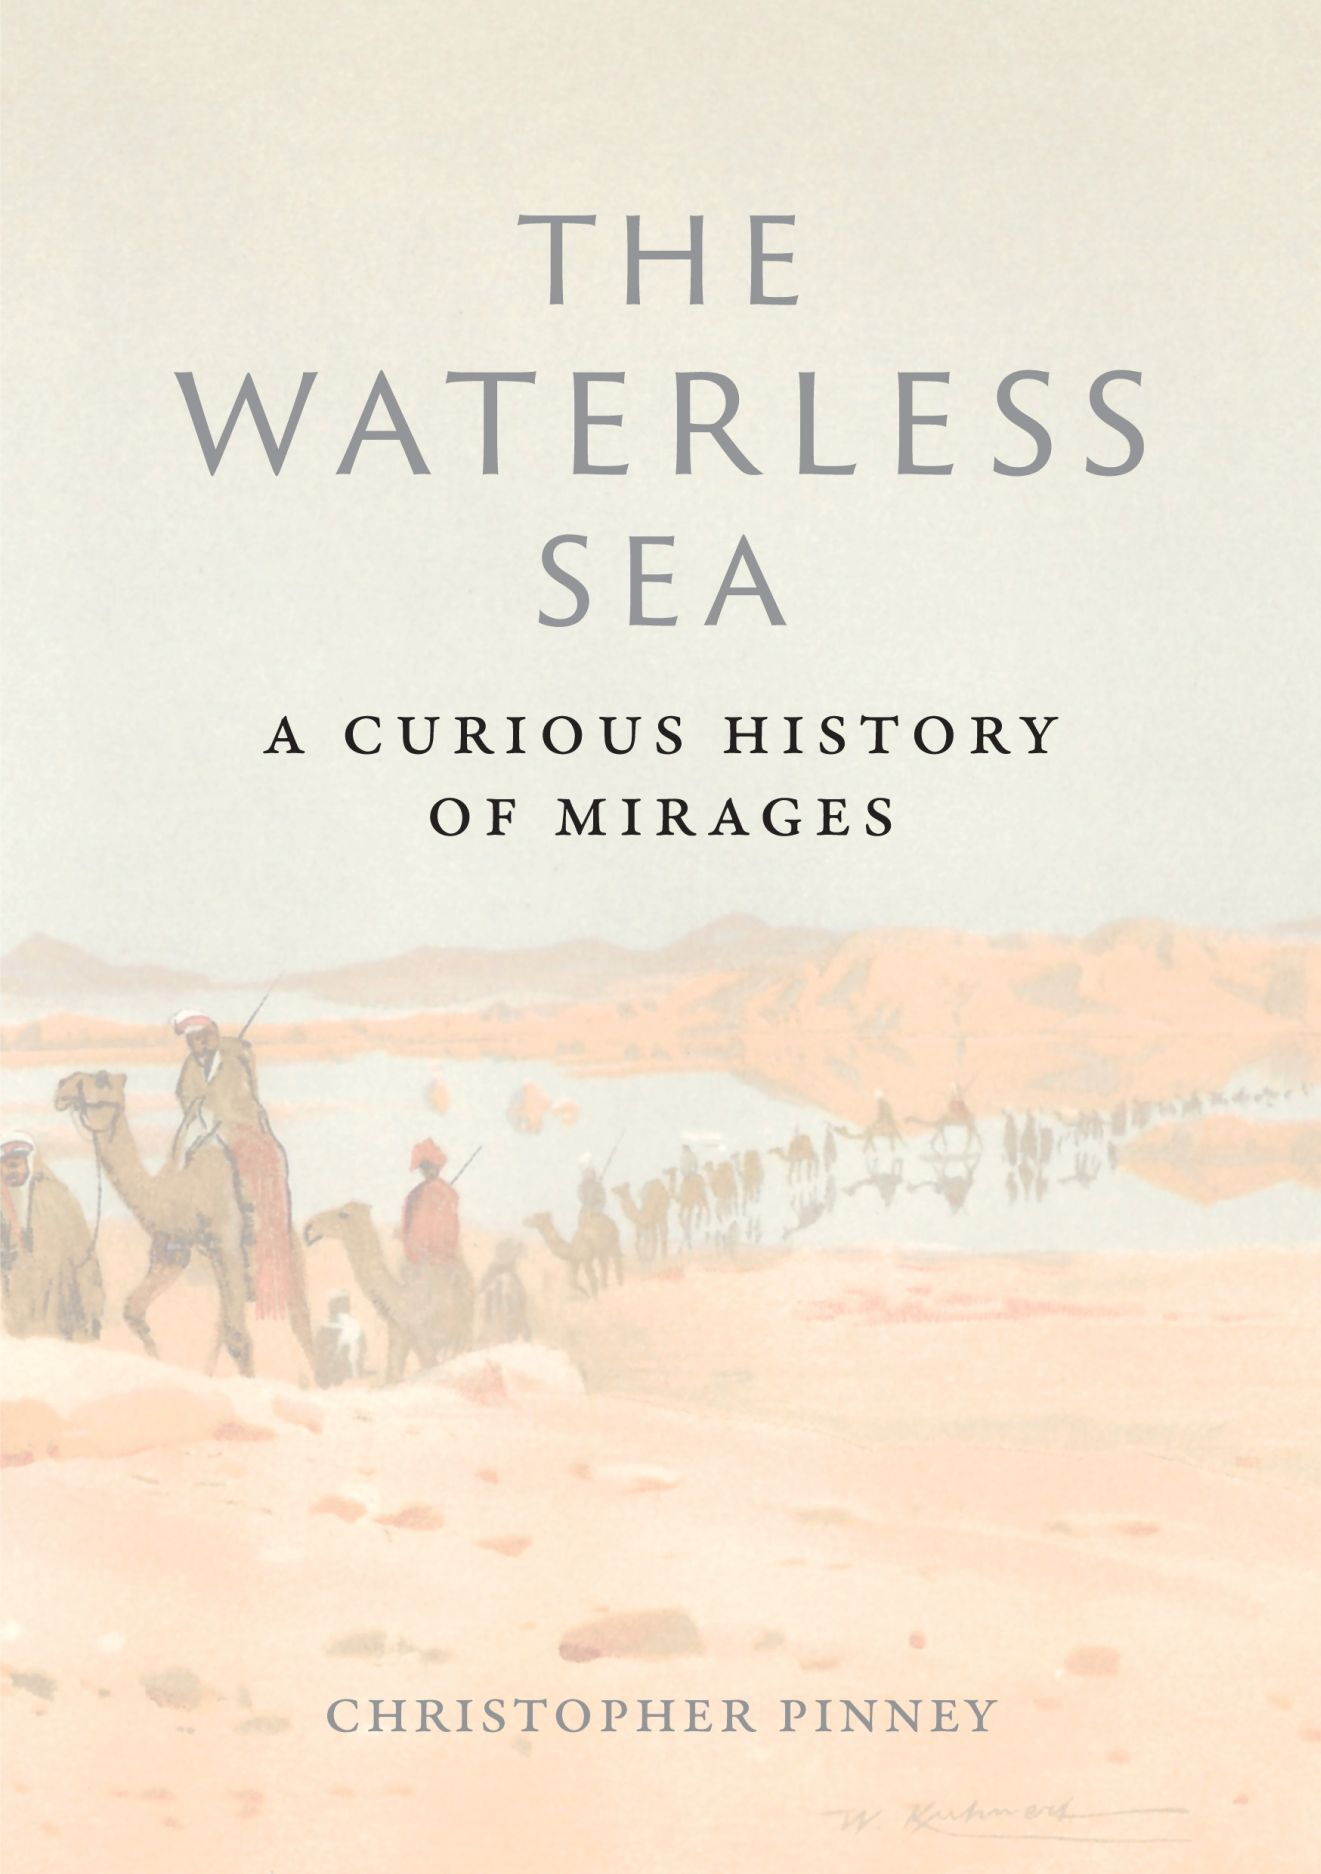 The Waterless Sea